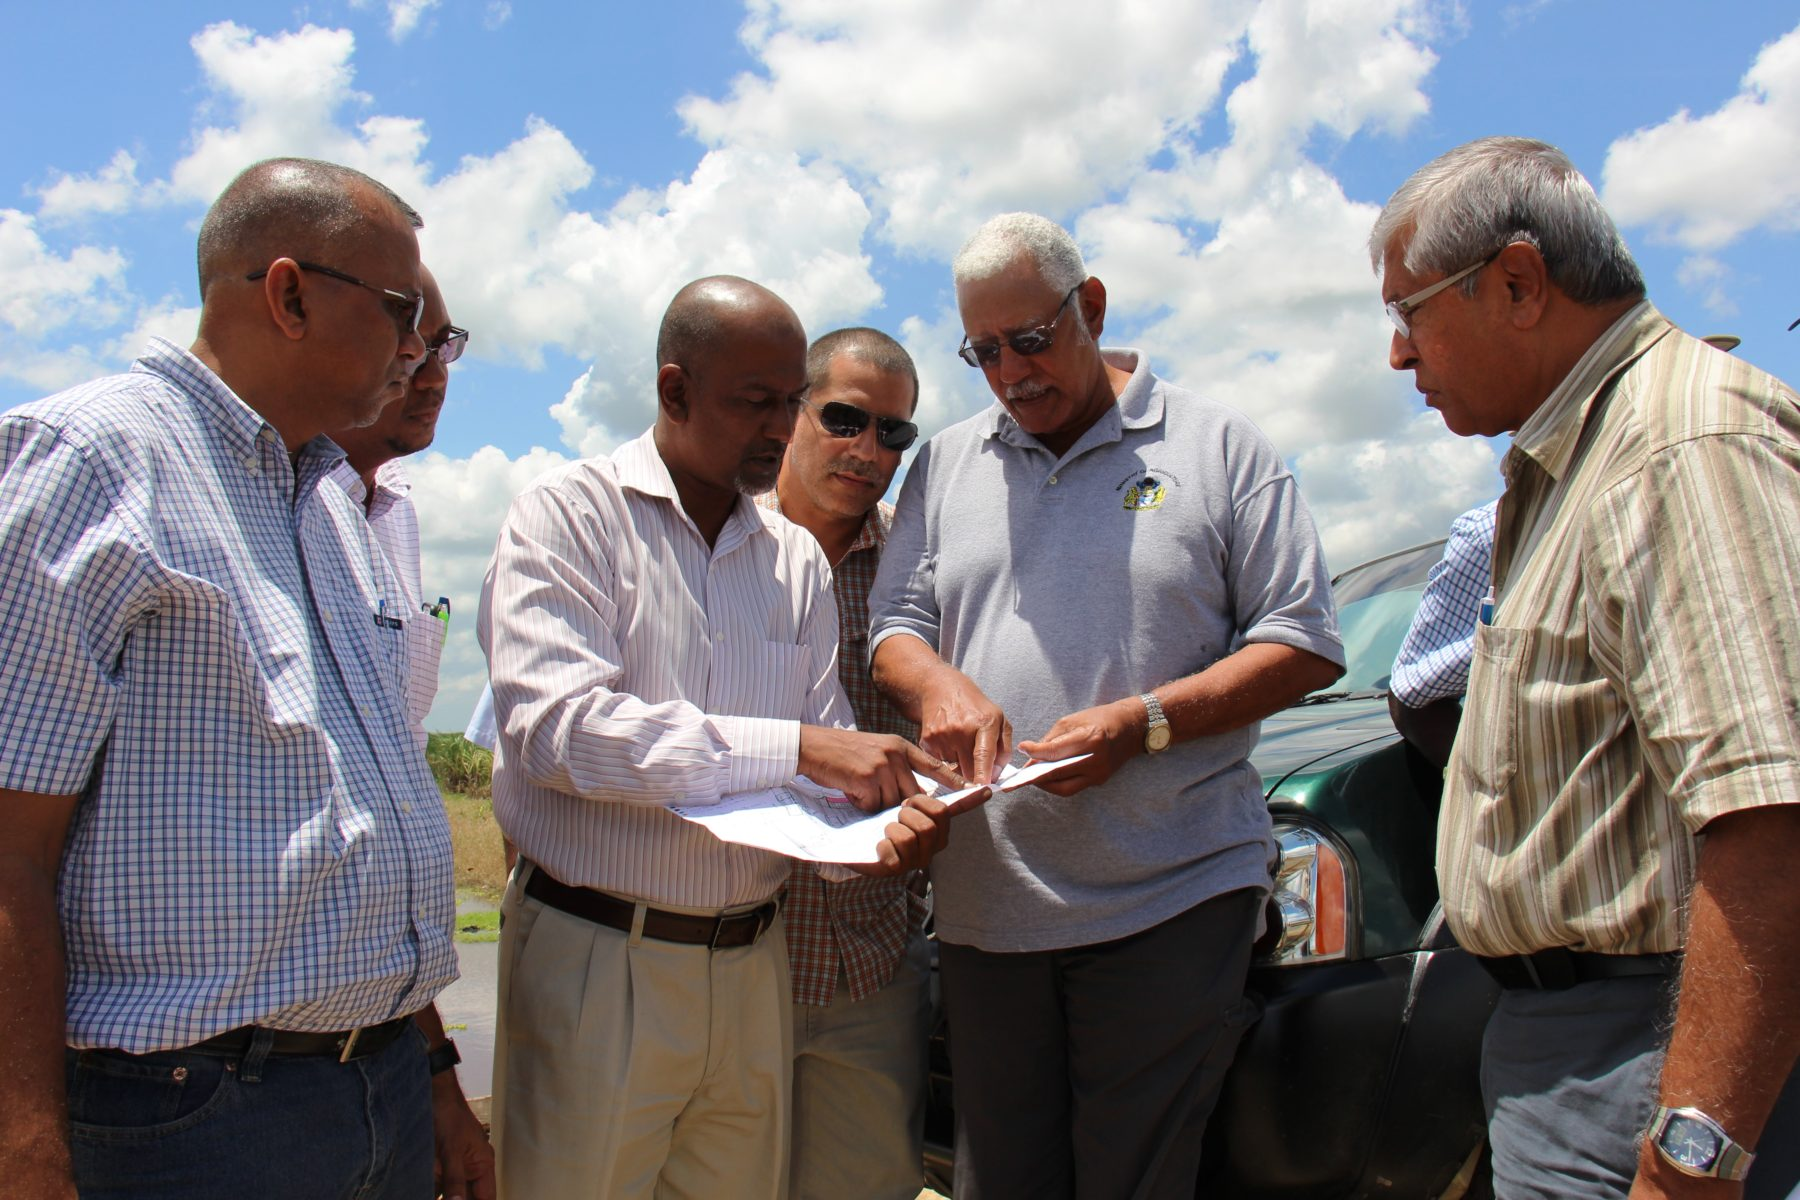 Agriculture Minister Noel Holder (second from right) during the visit. (Ministry of Agriculture photo)